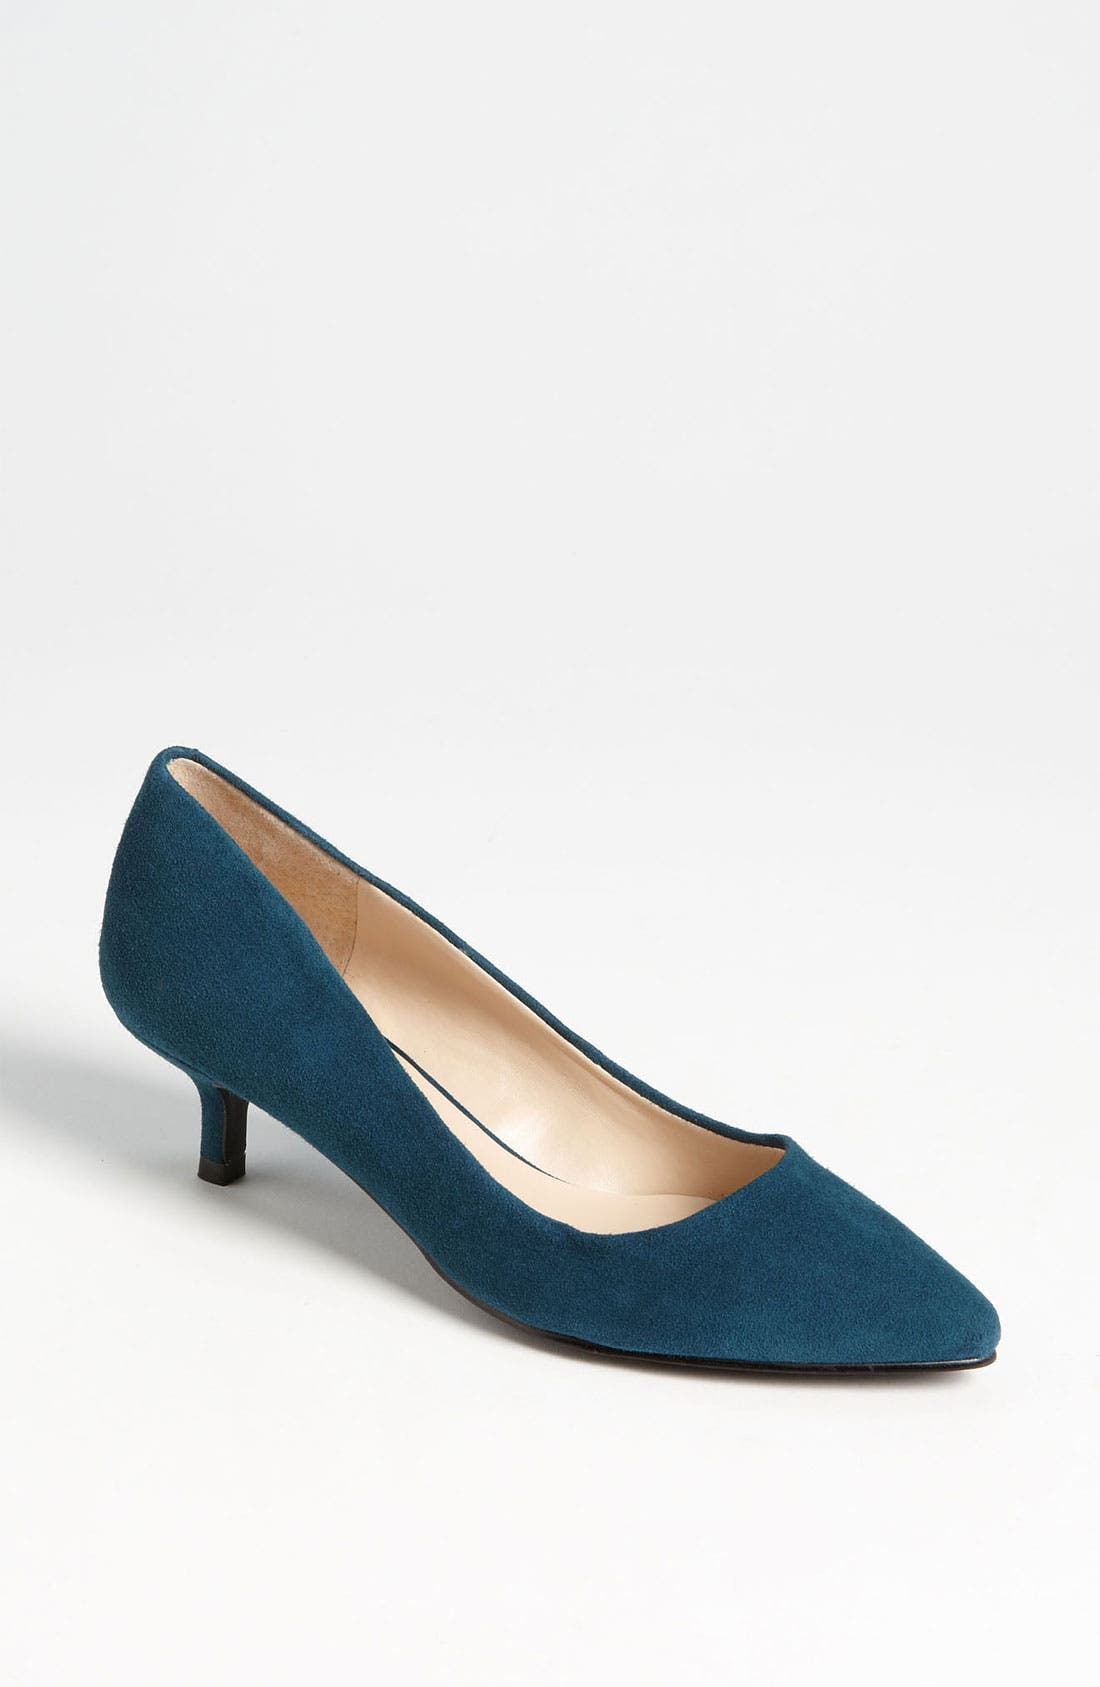 Main Image - Nine West 'Runit' Kitten Heel Pump